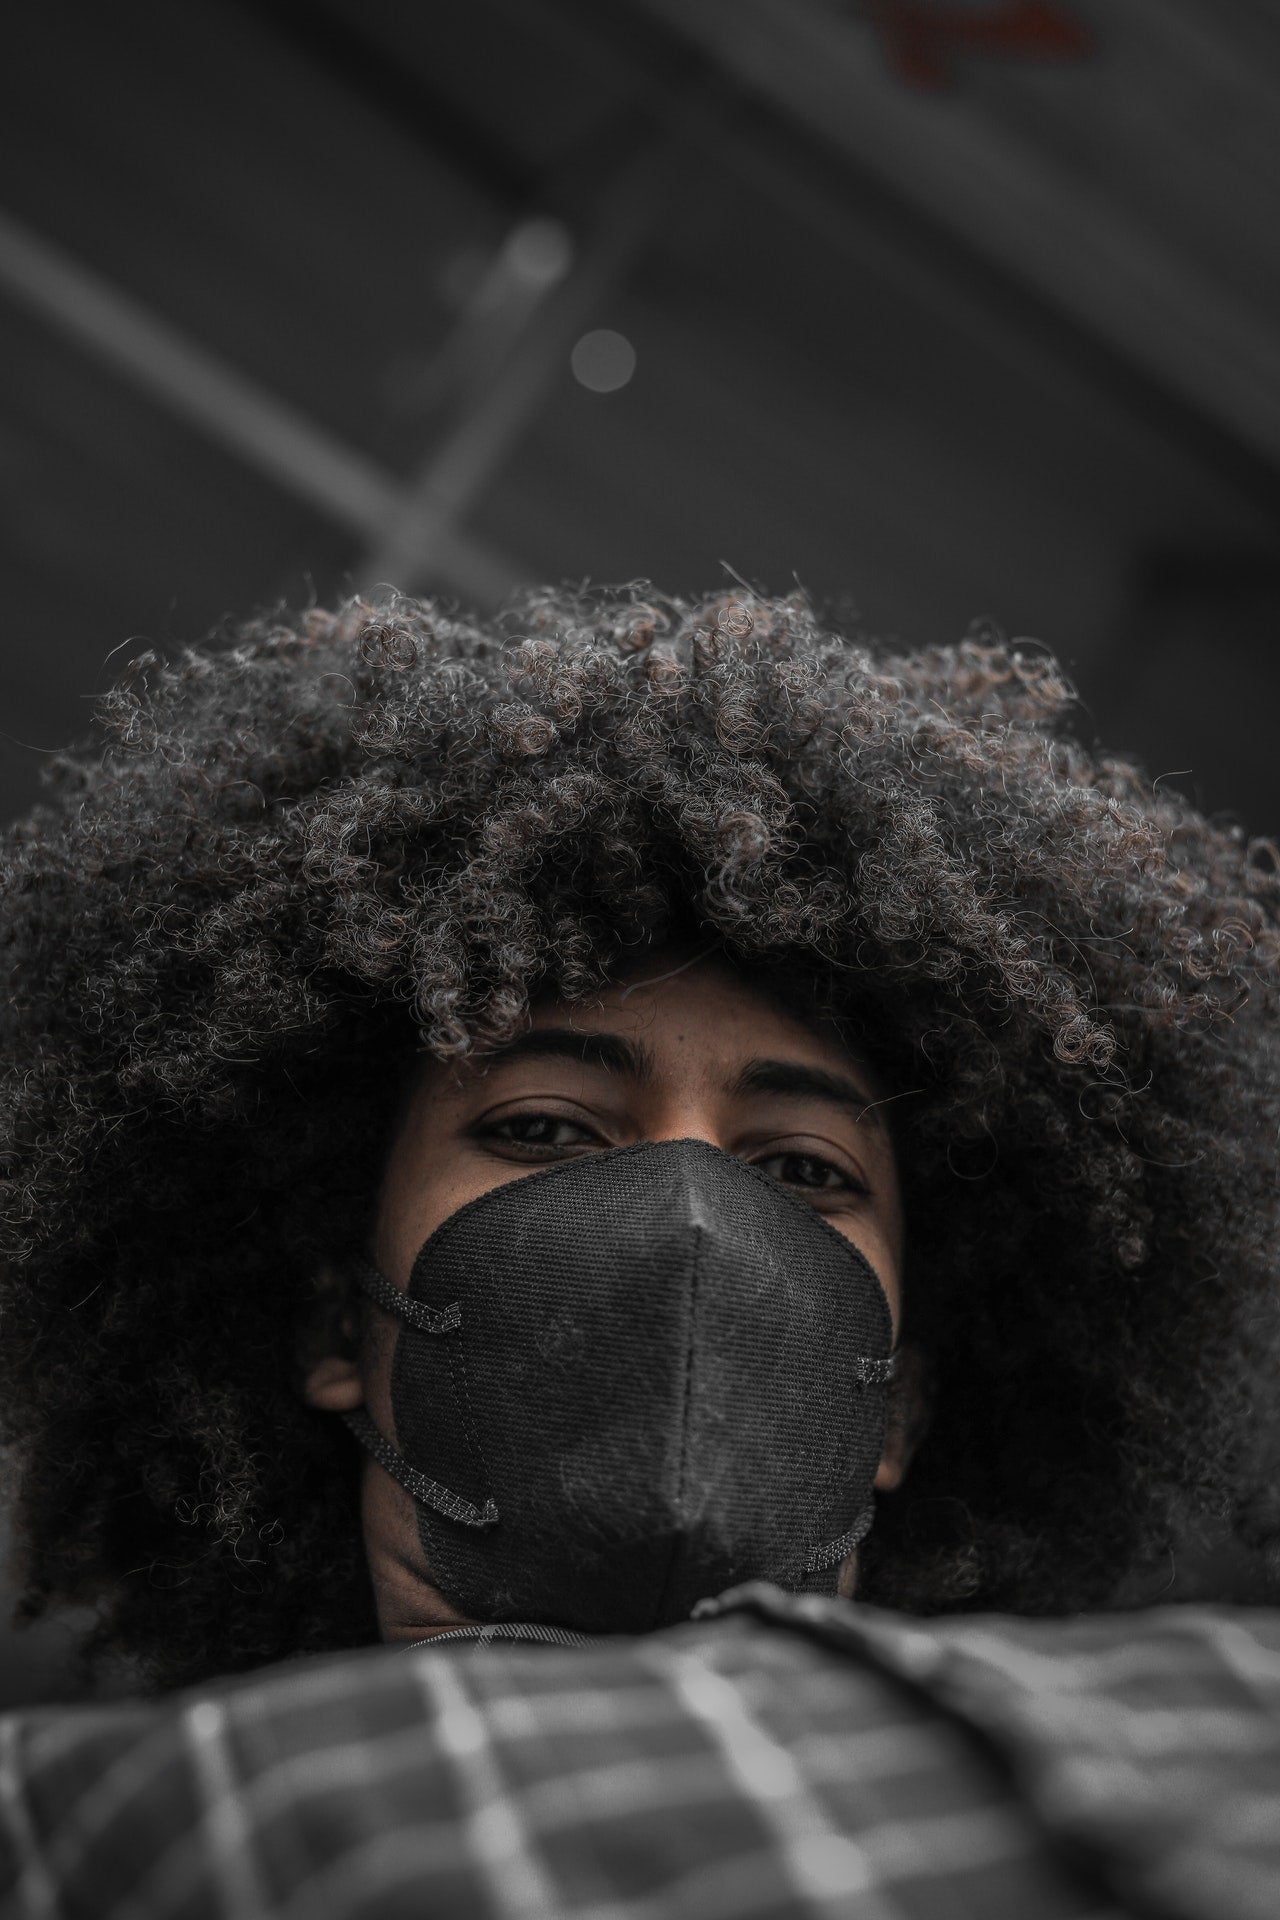 Black person with large hairstyle wearing a black facemask and dark shirt looking down into the camera